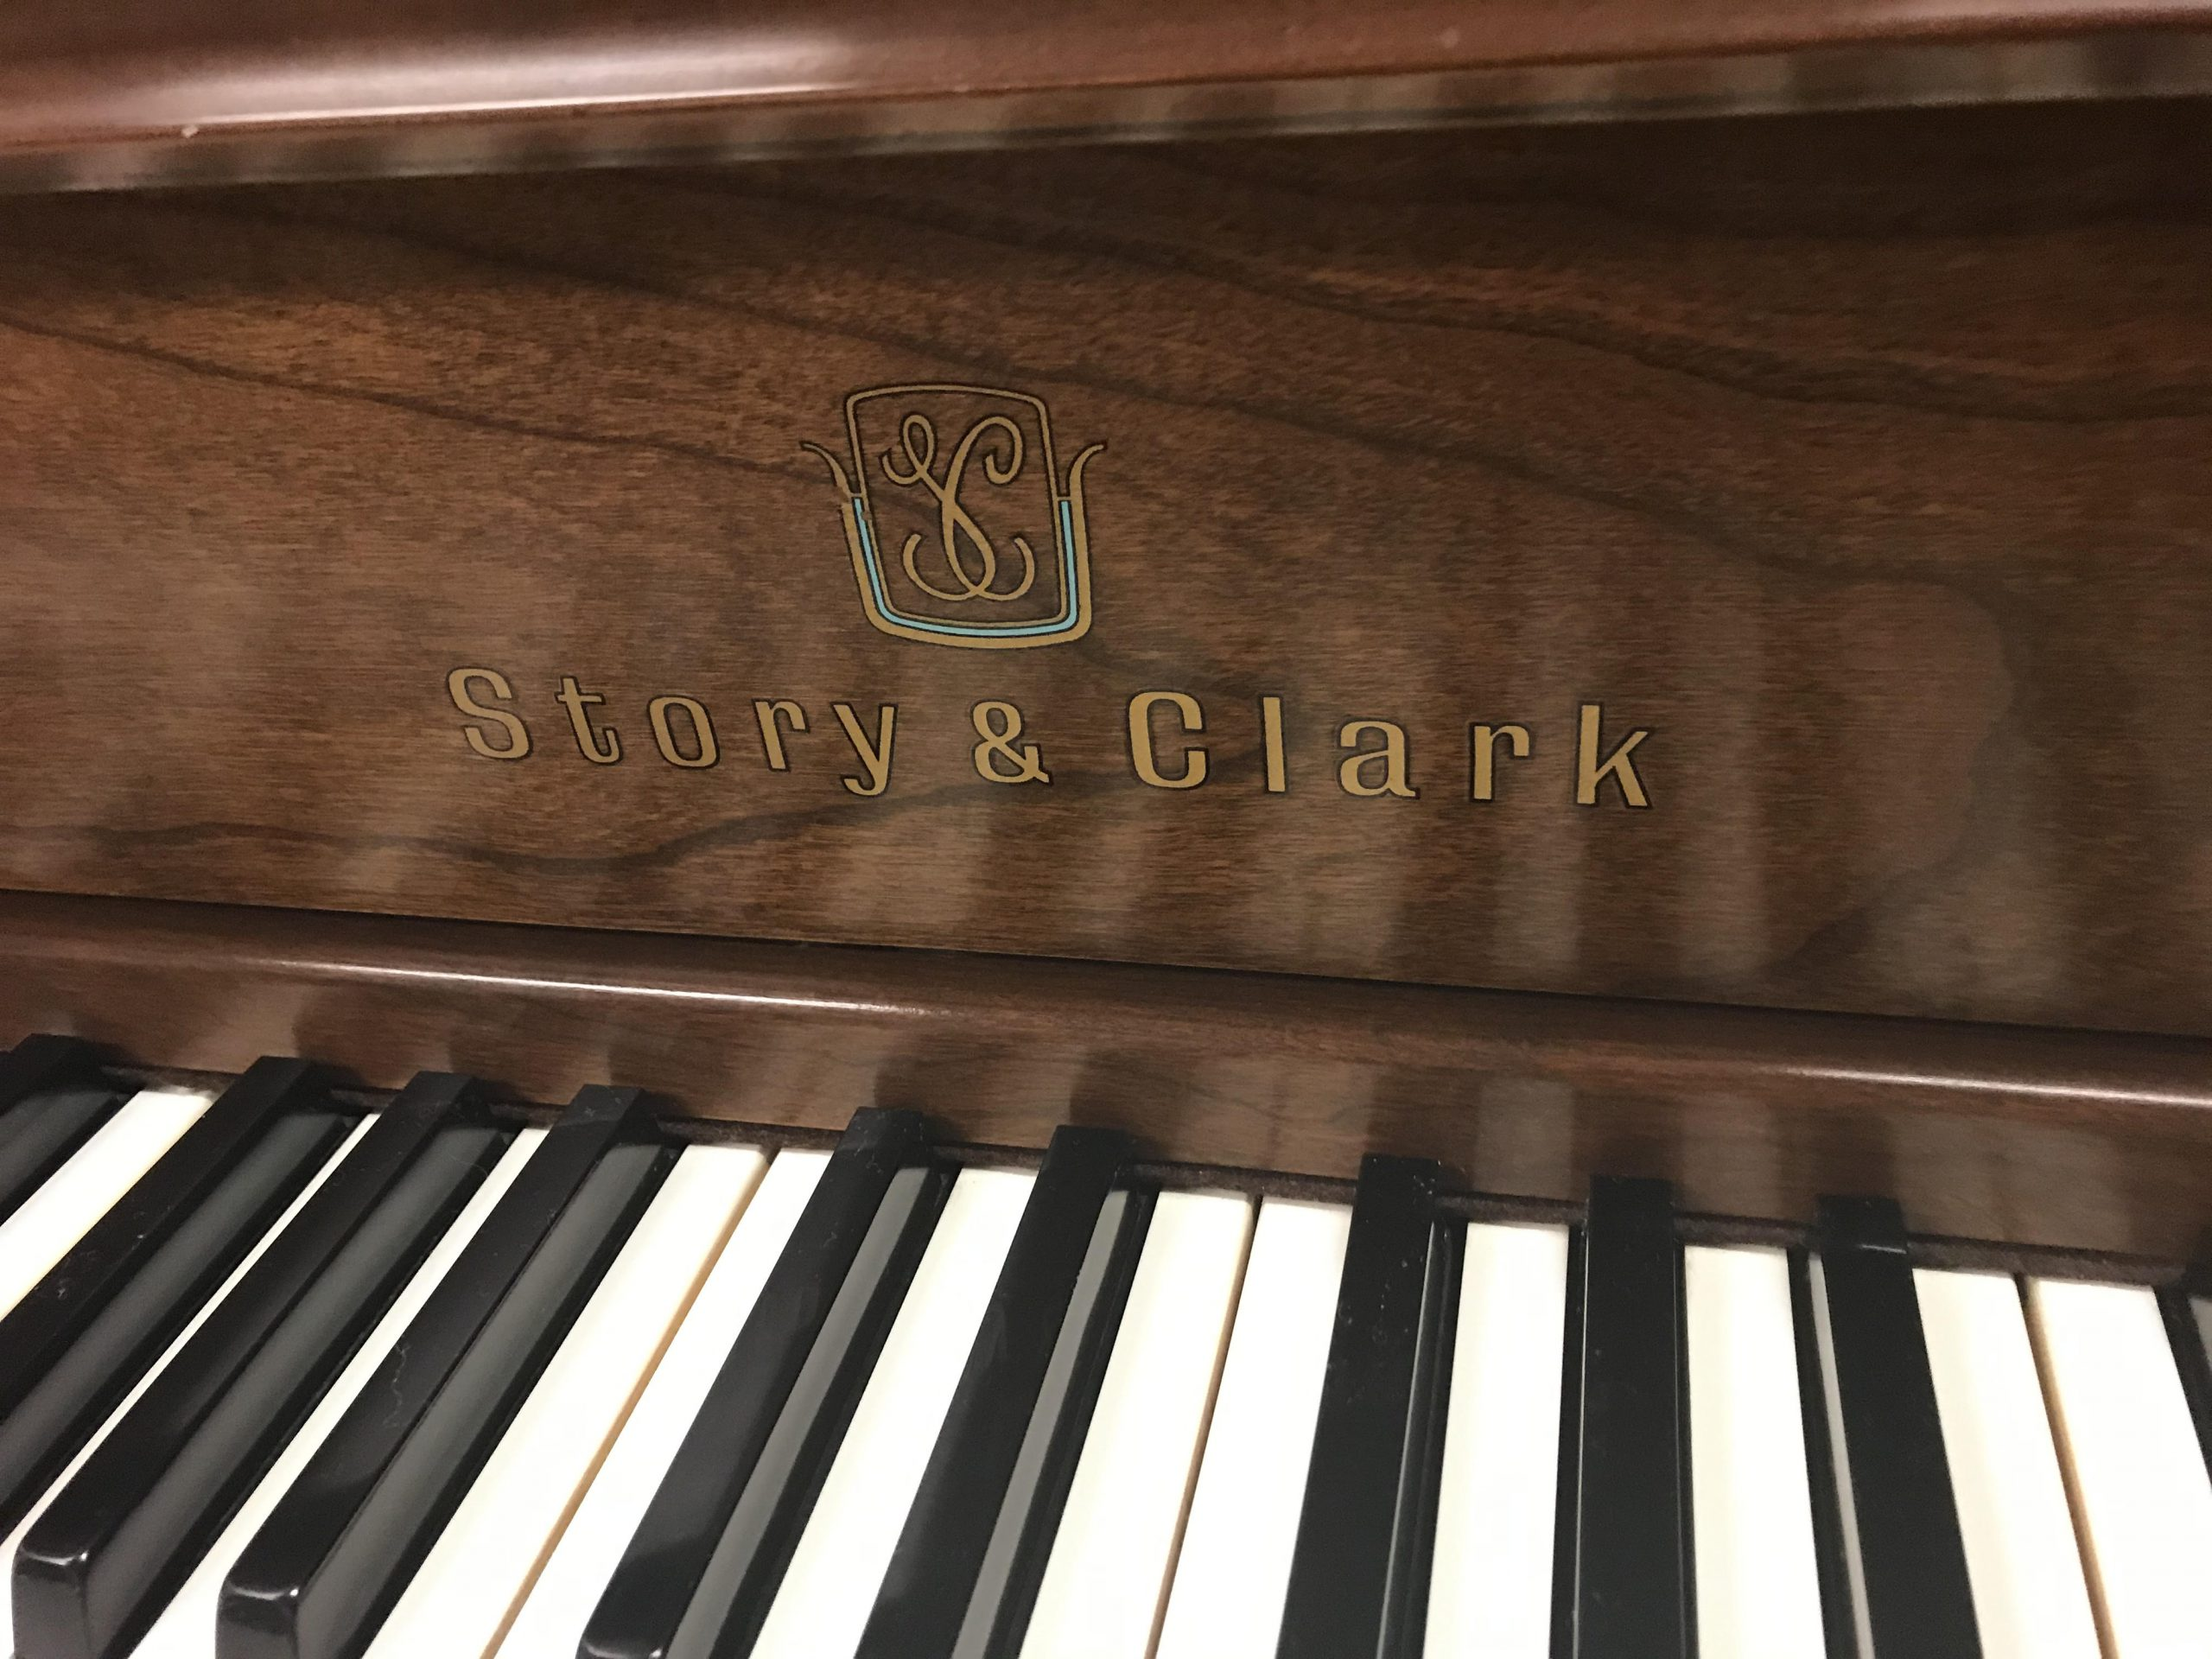 """12116-<br><font color=""""black""""><b>STORY & CLARK</b></font> 42″ Upright Designer Queen Anne Cherry Cabinet Made in the U.S.A. <br><font color=""""blue""""><b>Click Picture for """"Live Video""""</b></font>"""